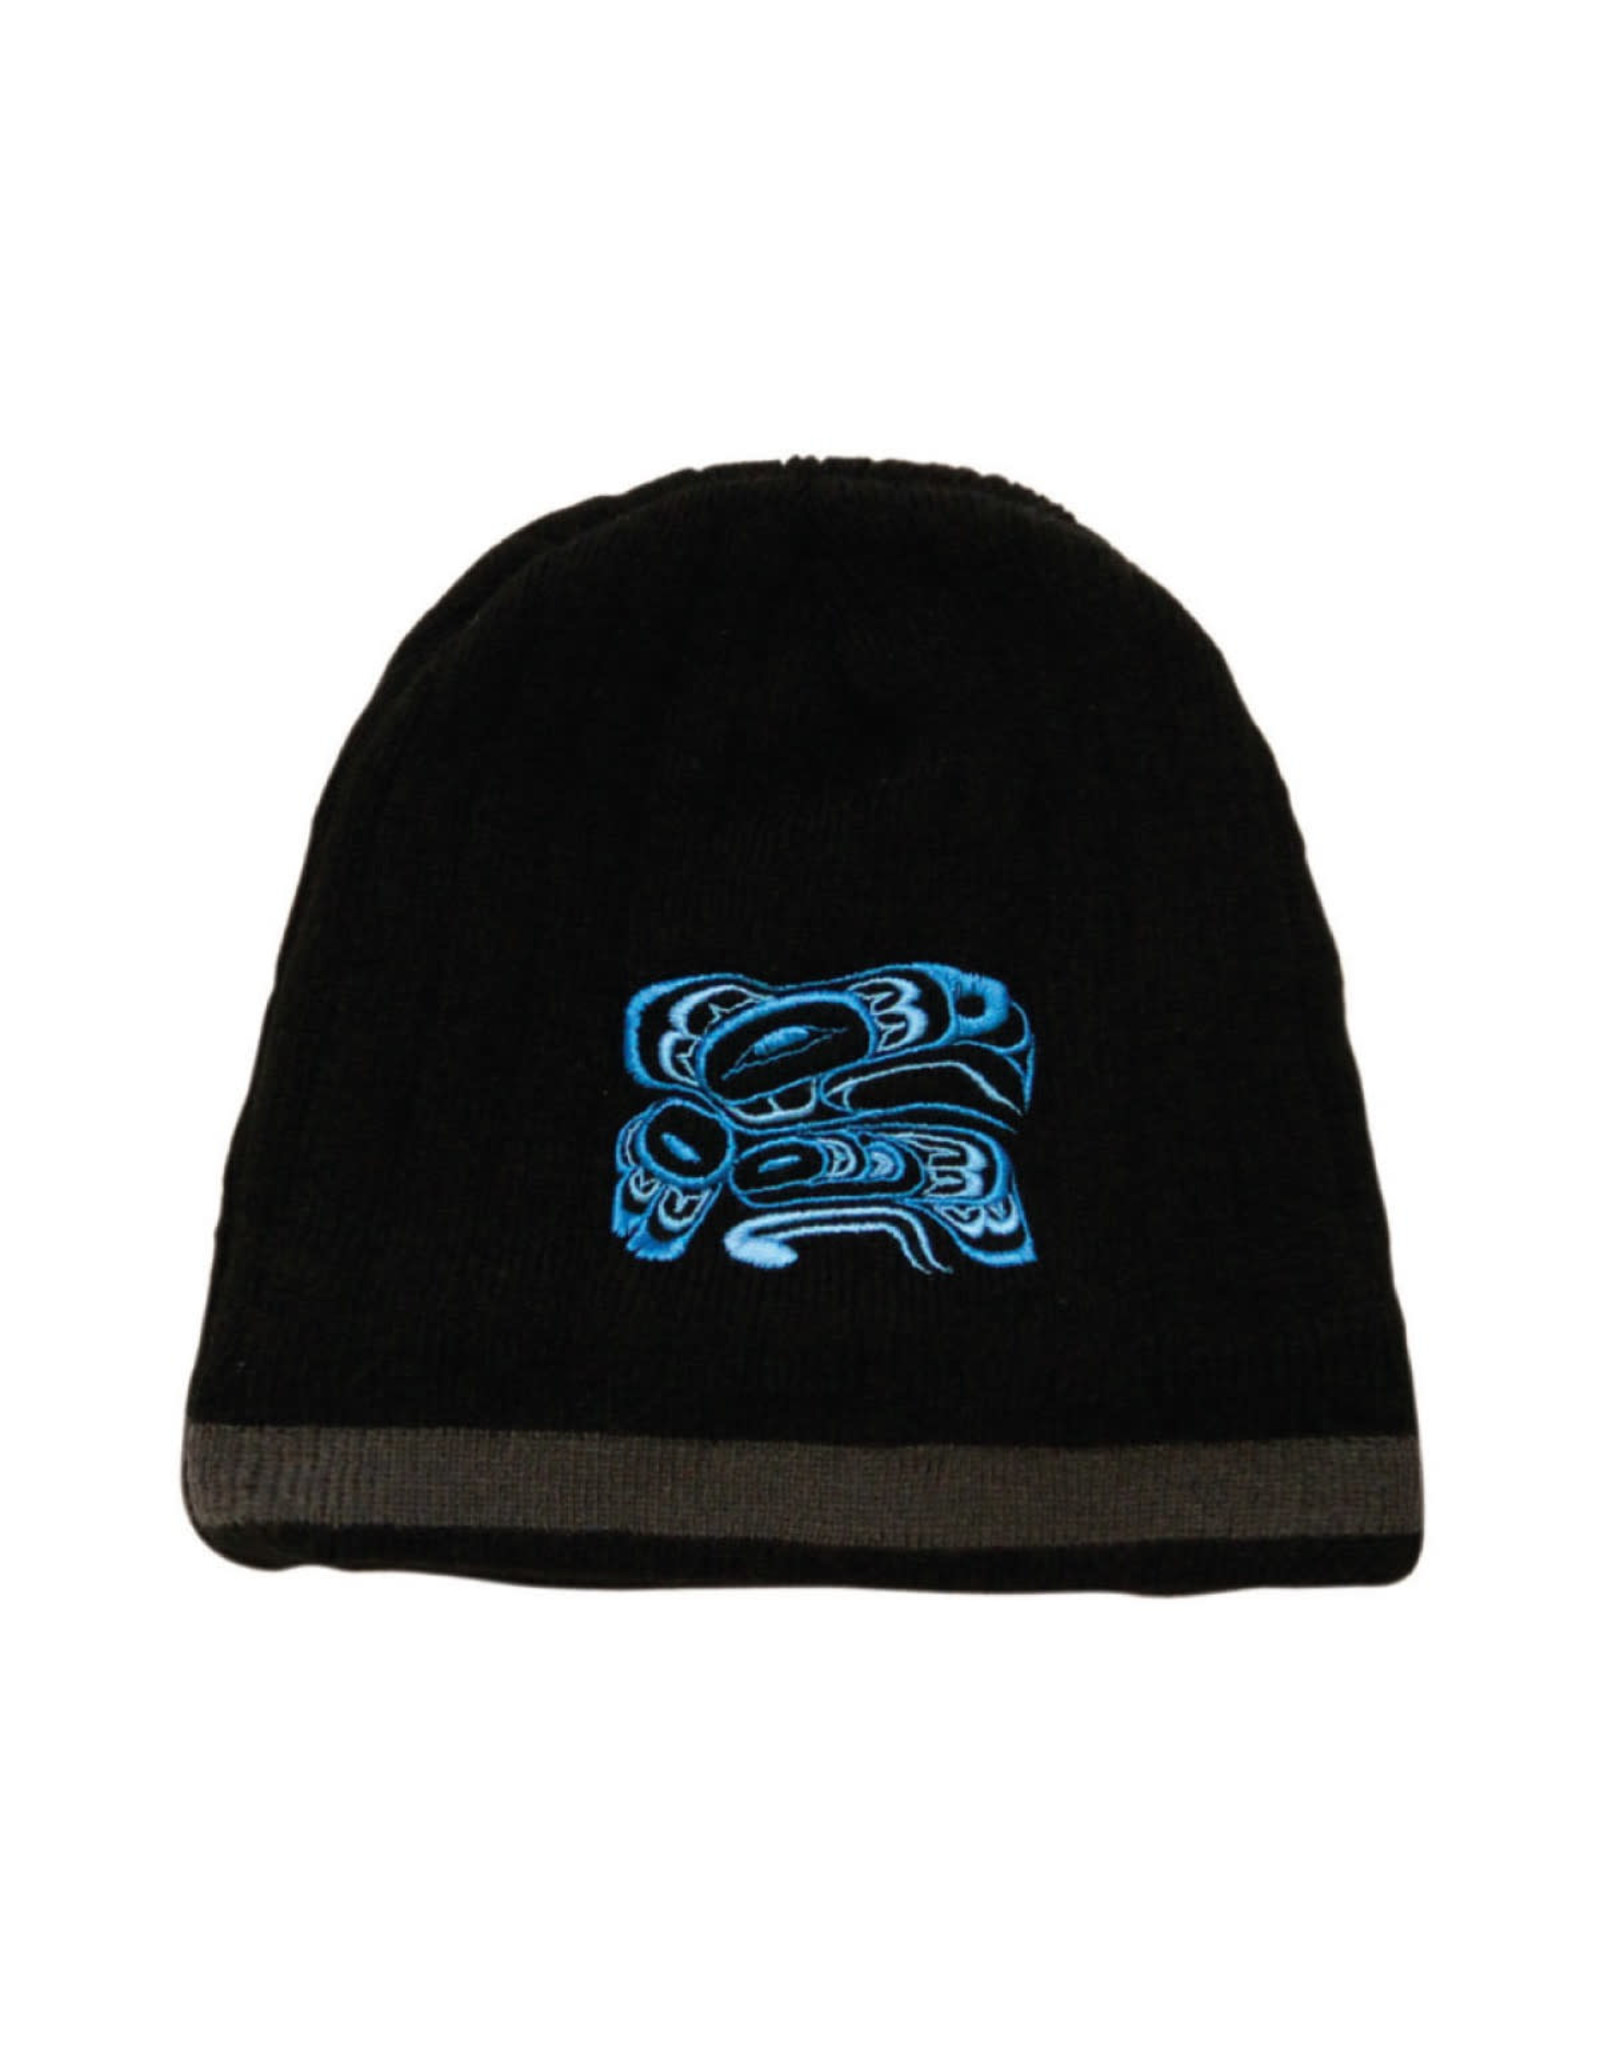 Knitted Tuque - Four Clans by Terry Starr (TQSF)